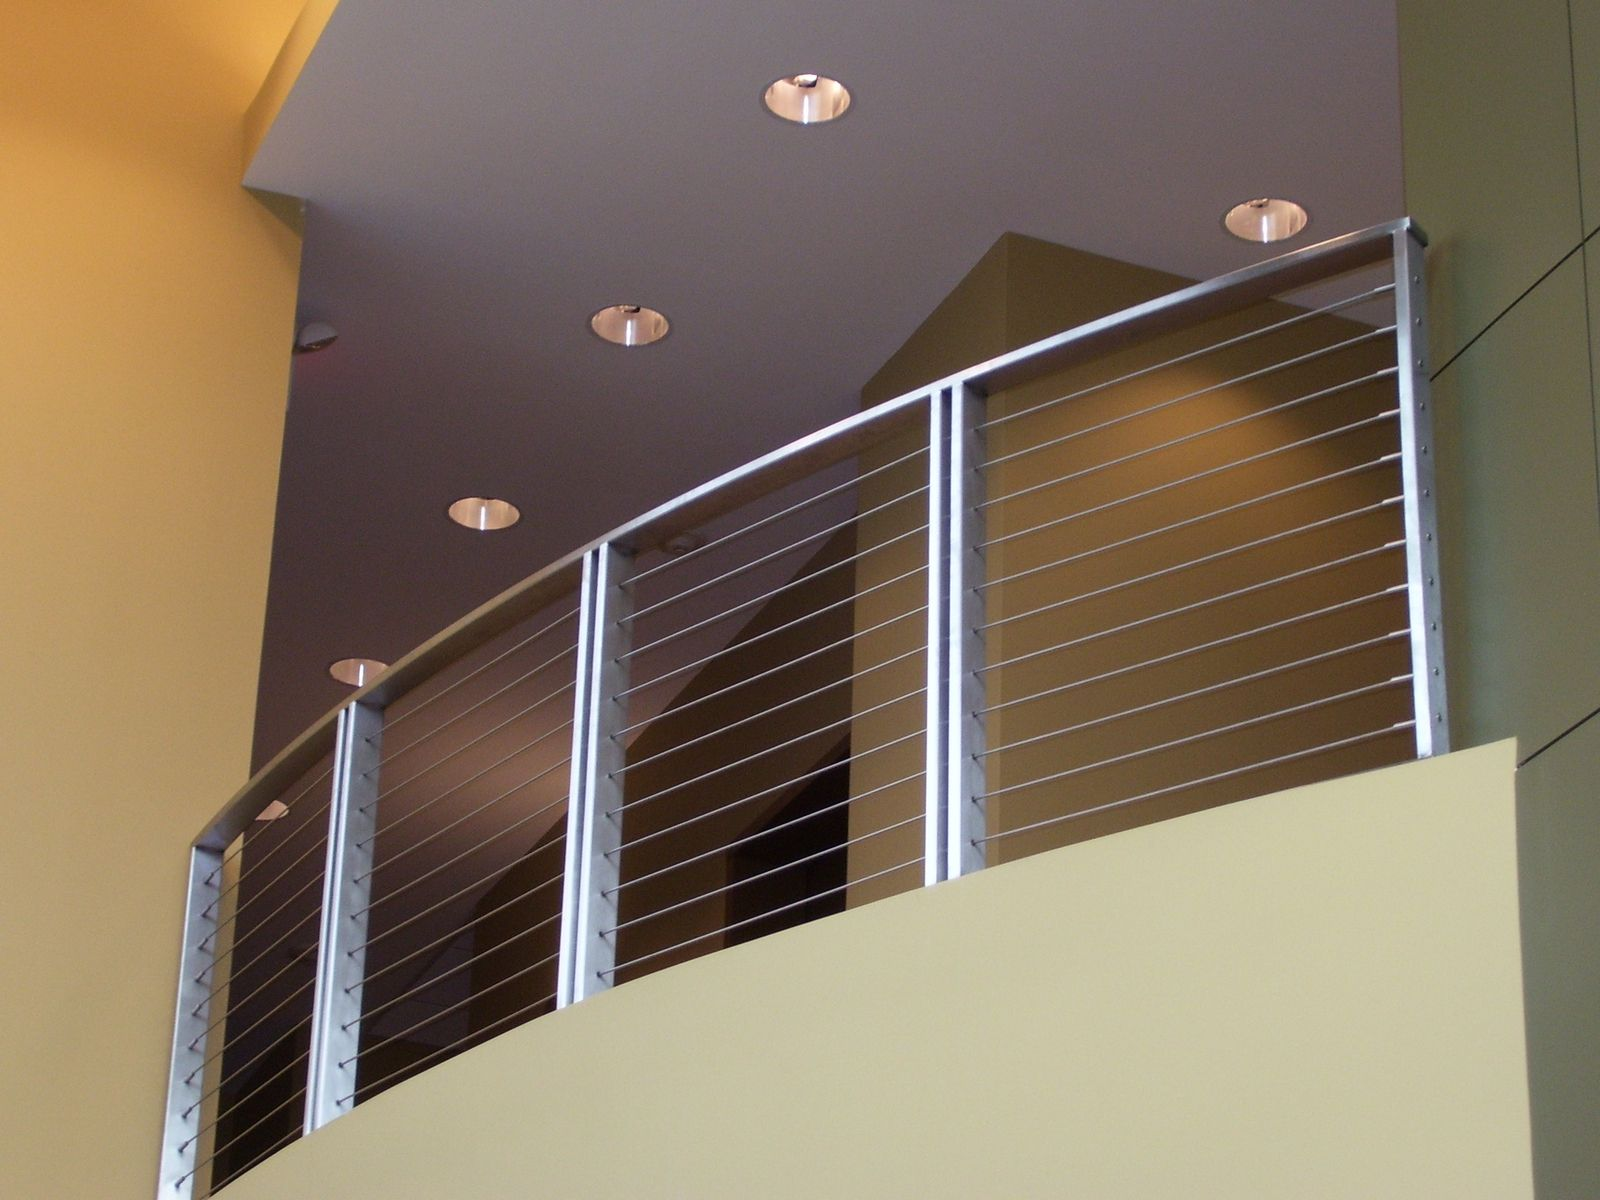 Handmade Stainless Steel Cable Balcony Rail by Foreman ...